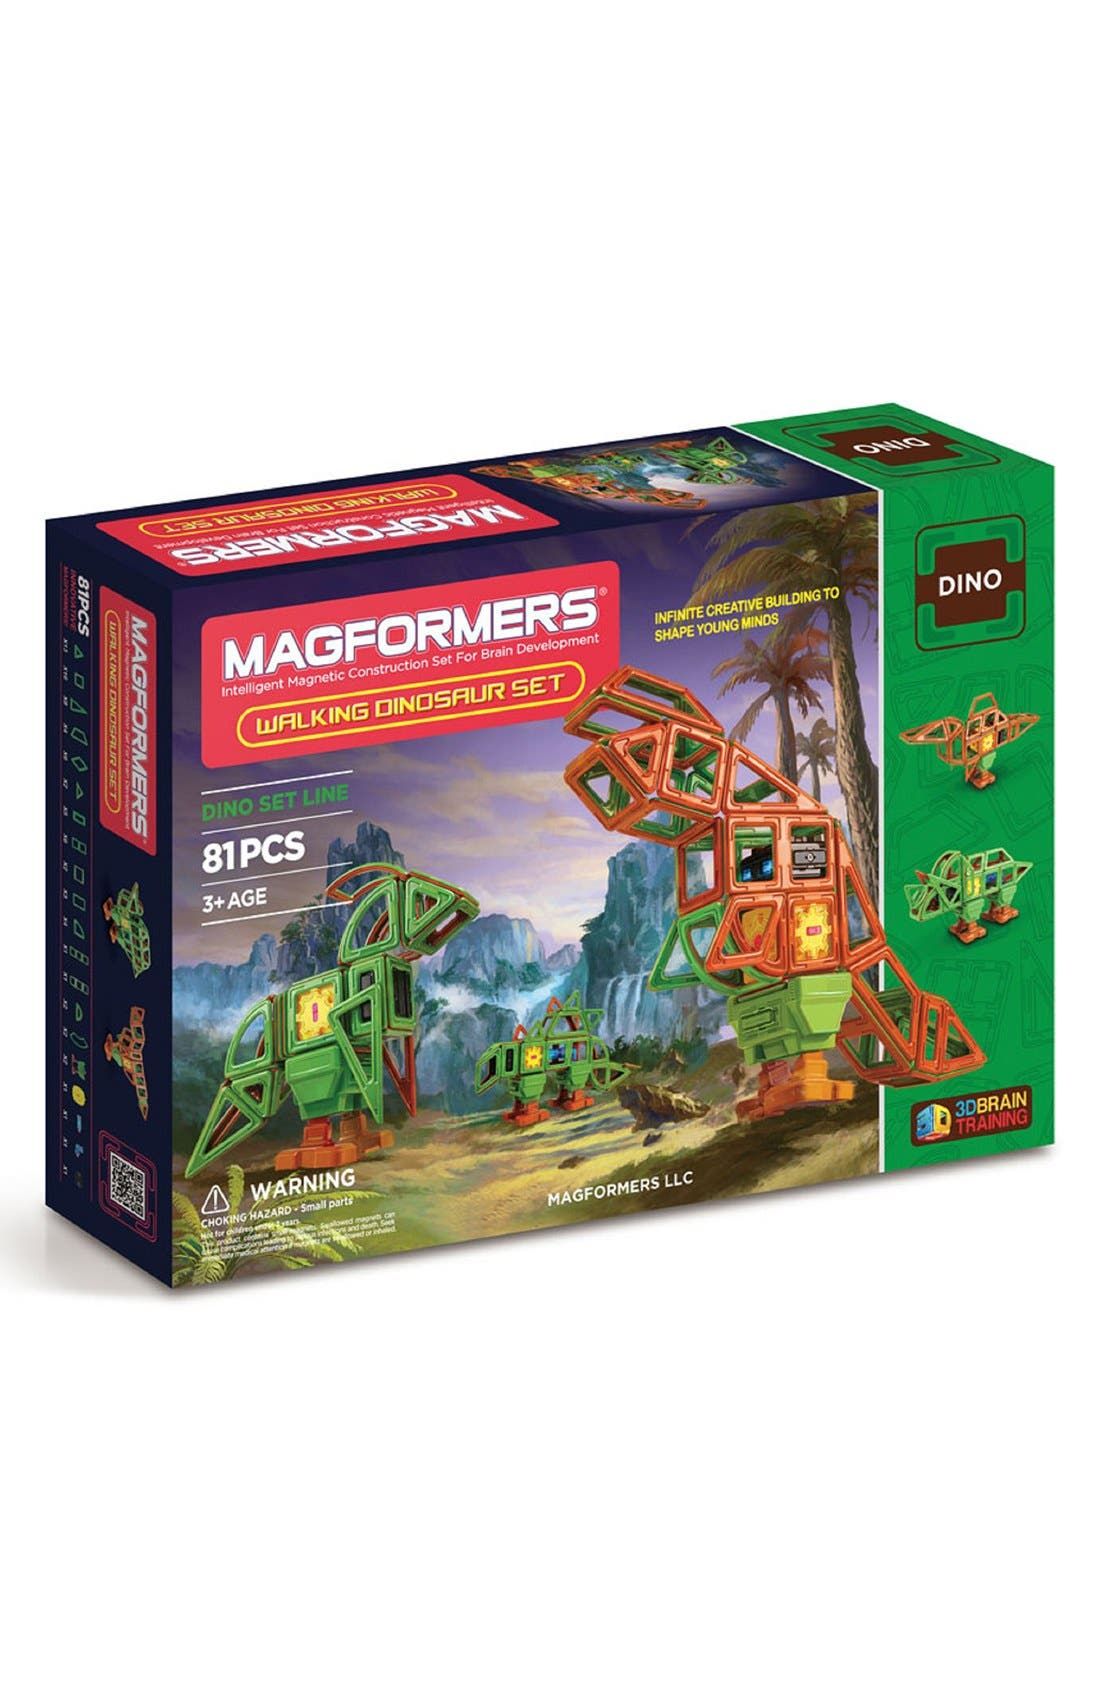 MAGFORMERS 'Walking Dinosaur' Wind-Up Toy Magnetic Construction